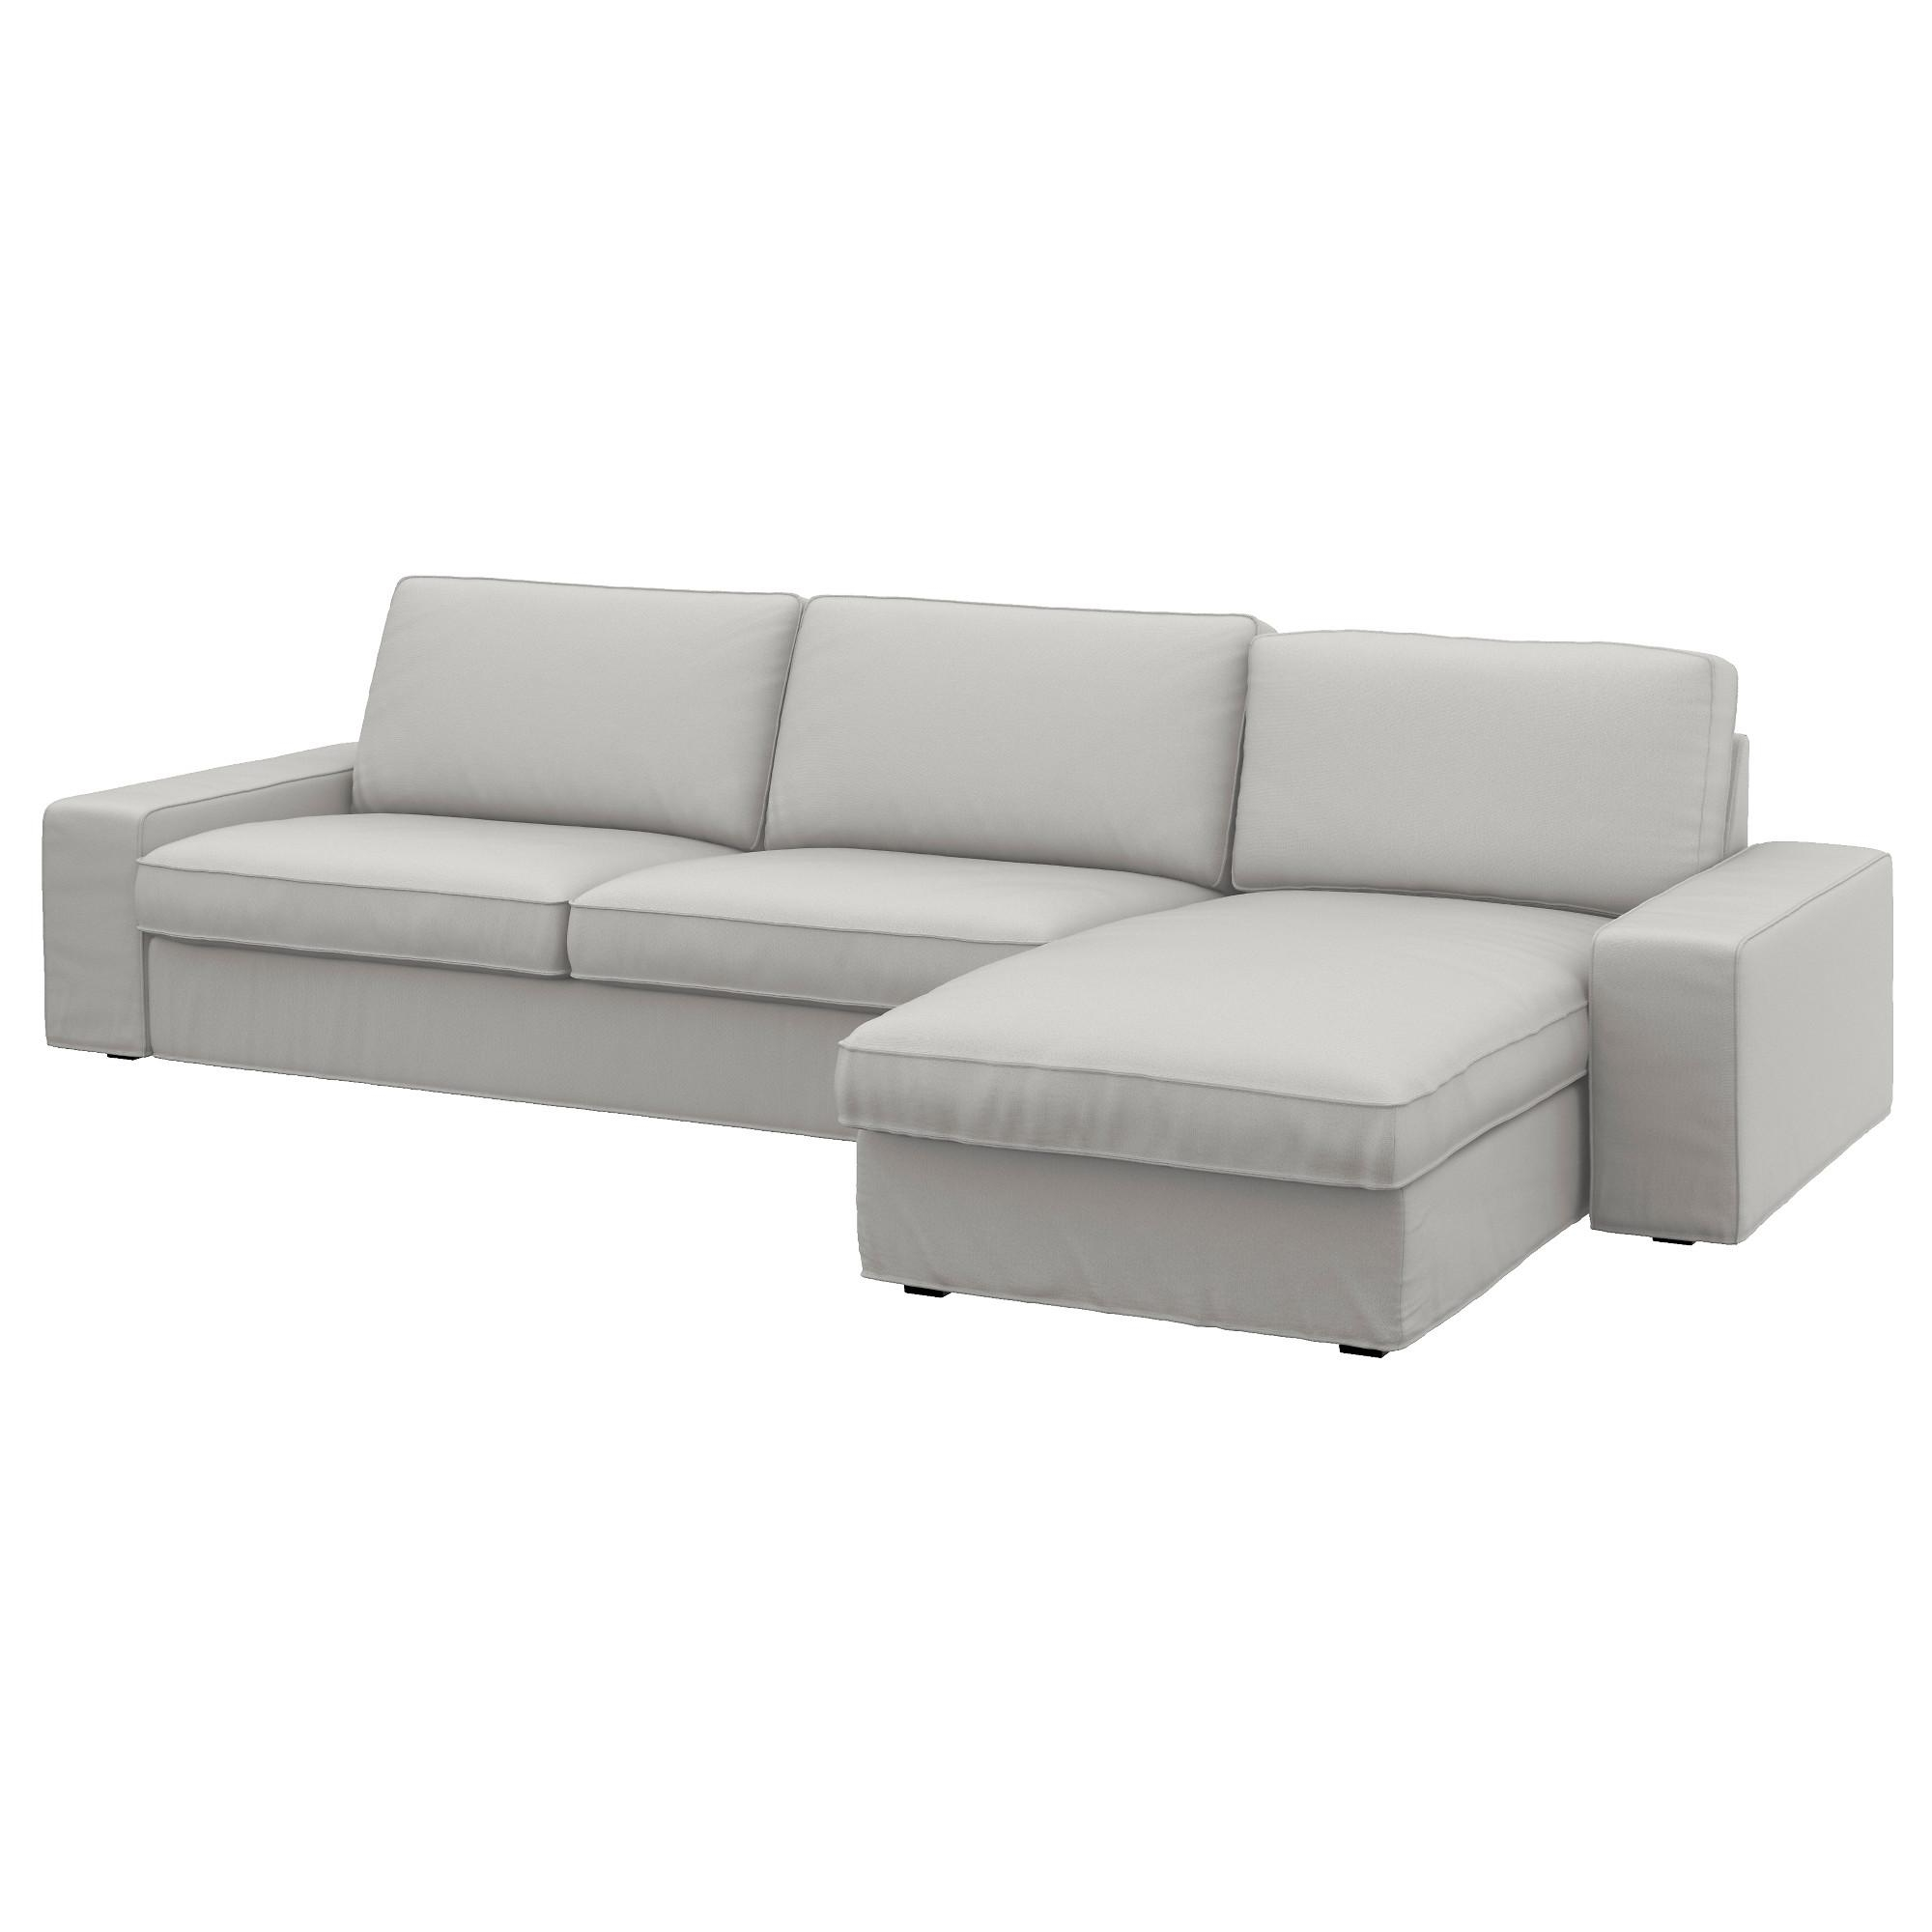 Sofas Center : Narrowepth Sofa Sofas For Small Spaces Table Intended For Narrow Depth Sofas (View 4 of 20)